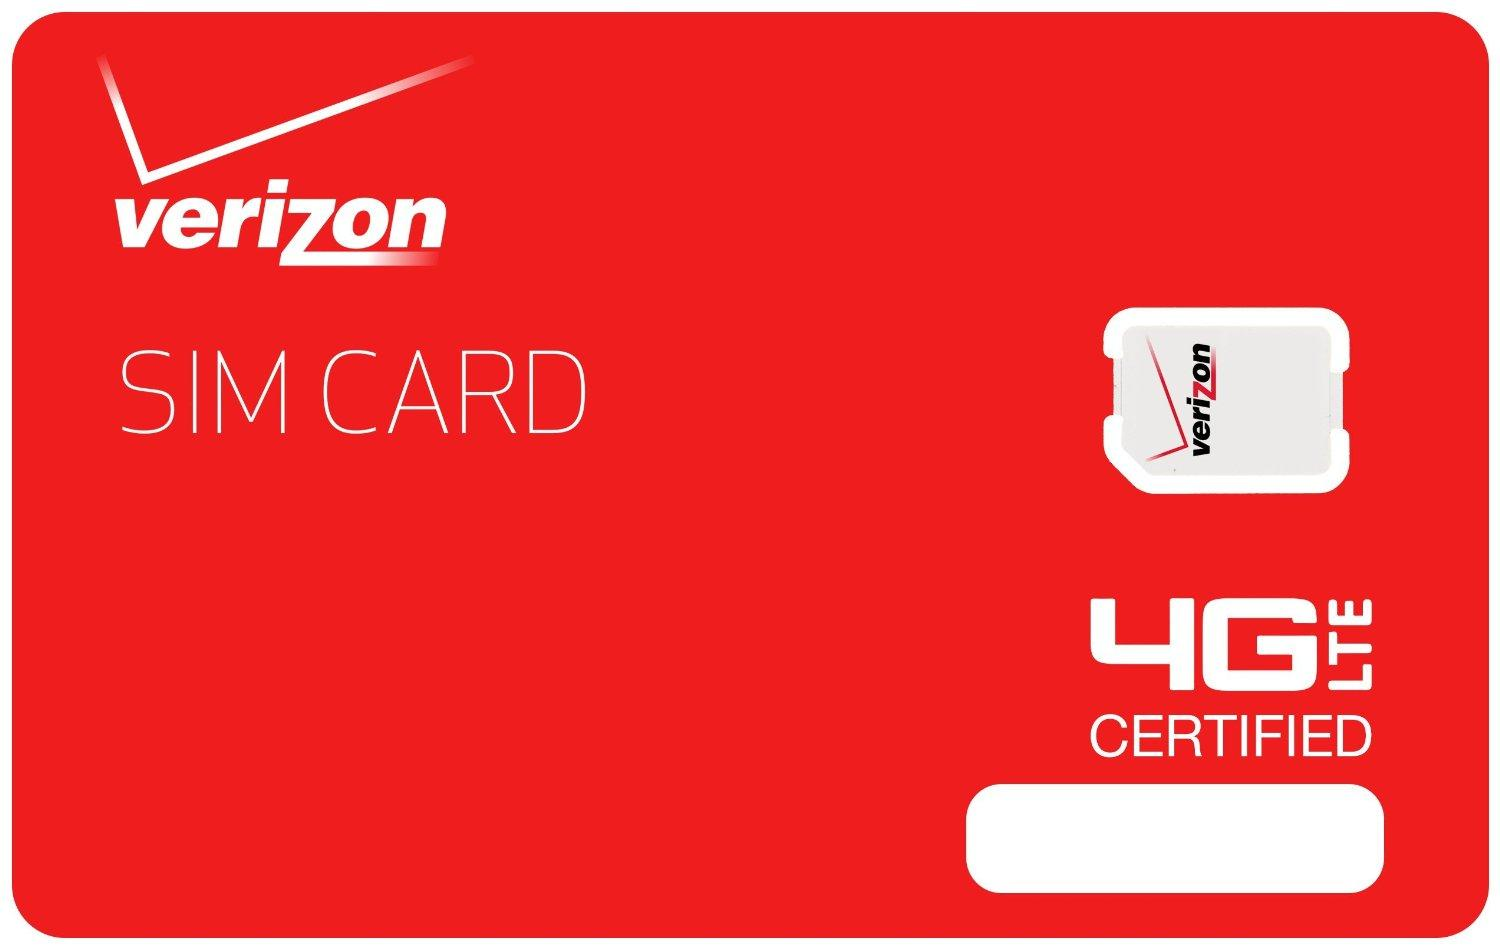 Only $24.99Verizon 4G SIM Activation Kit include the first month service